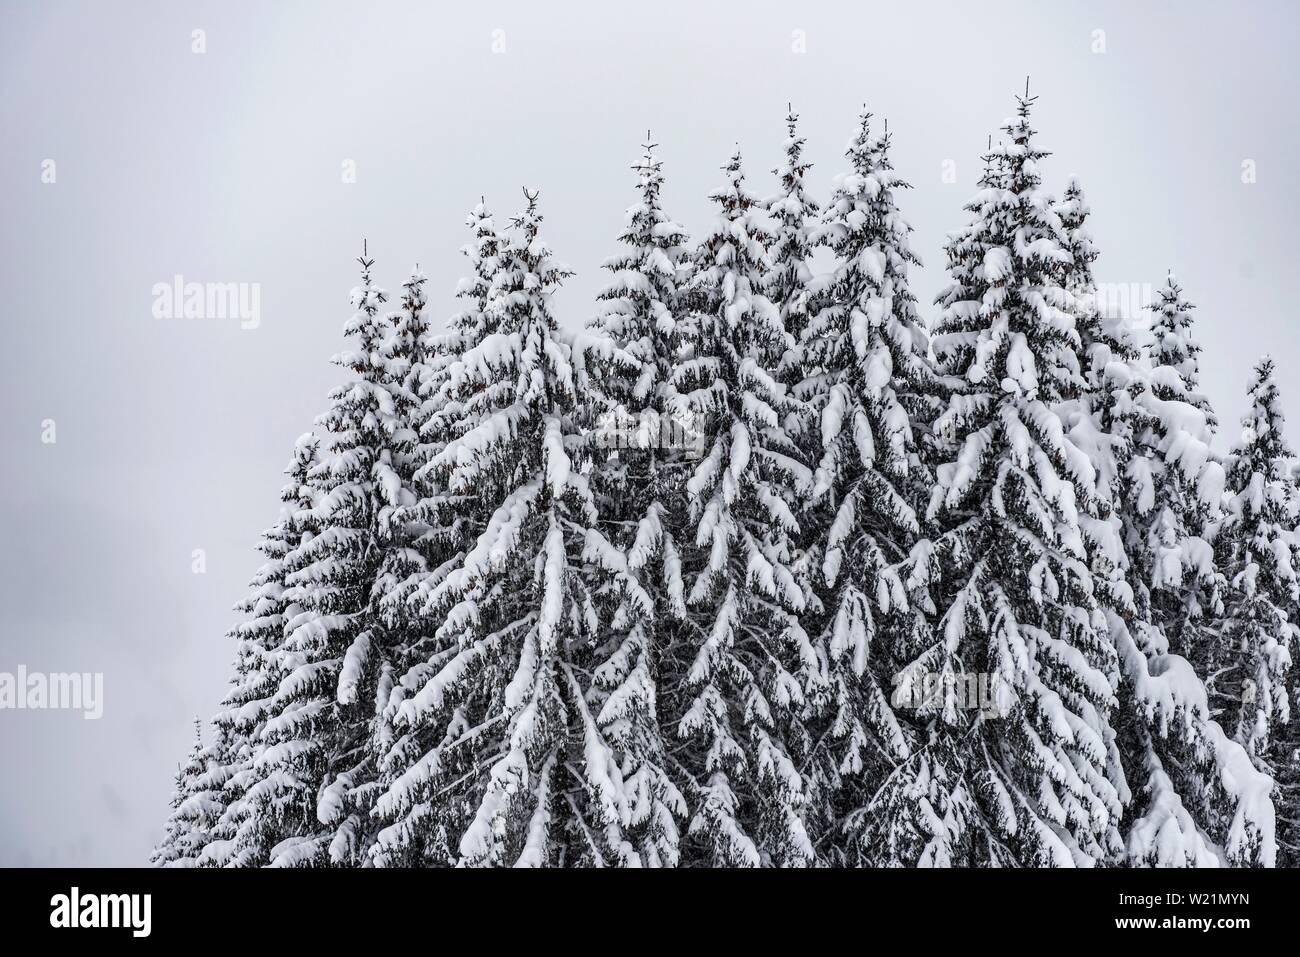 Snow-covered Spruces (Picea) in winter, deep snow in the forest, Brixen im Thale, Tyrol, Austria Stock Photo